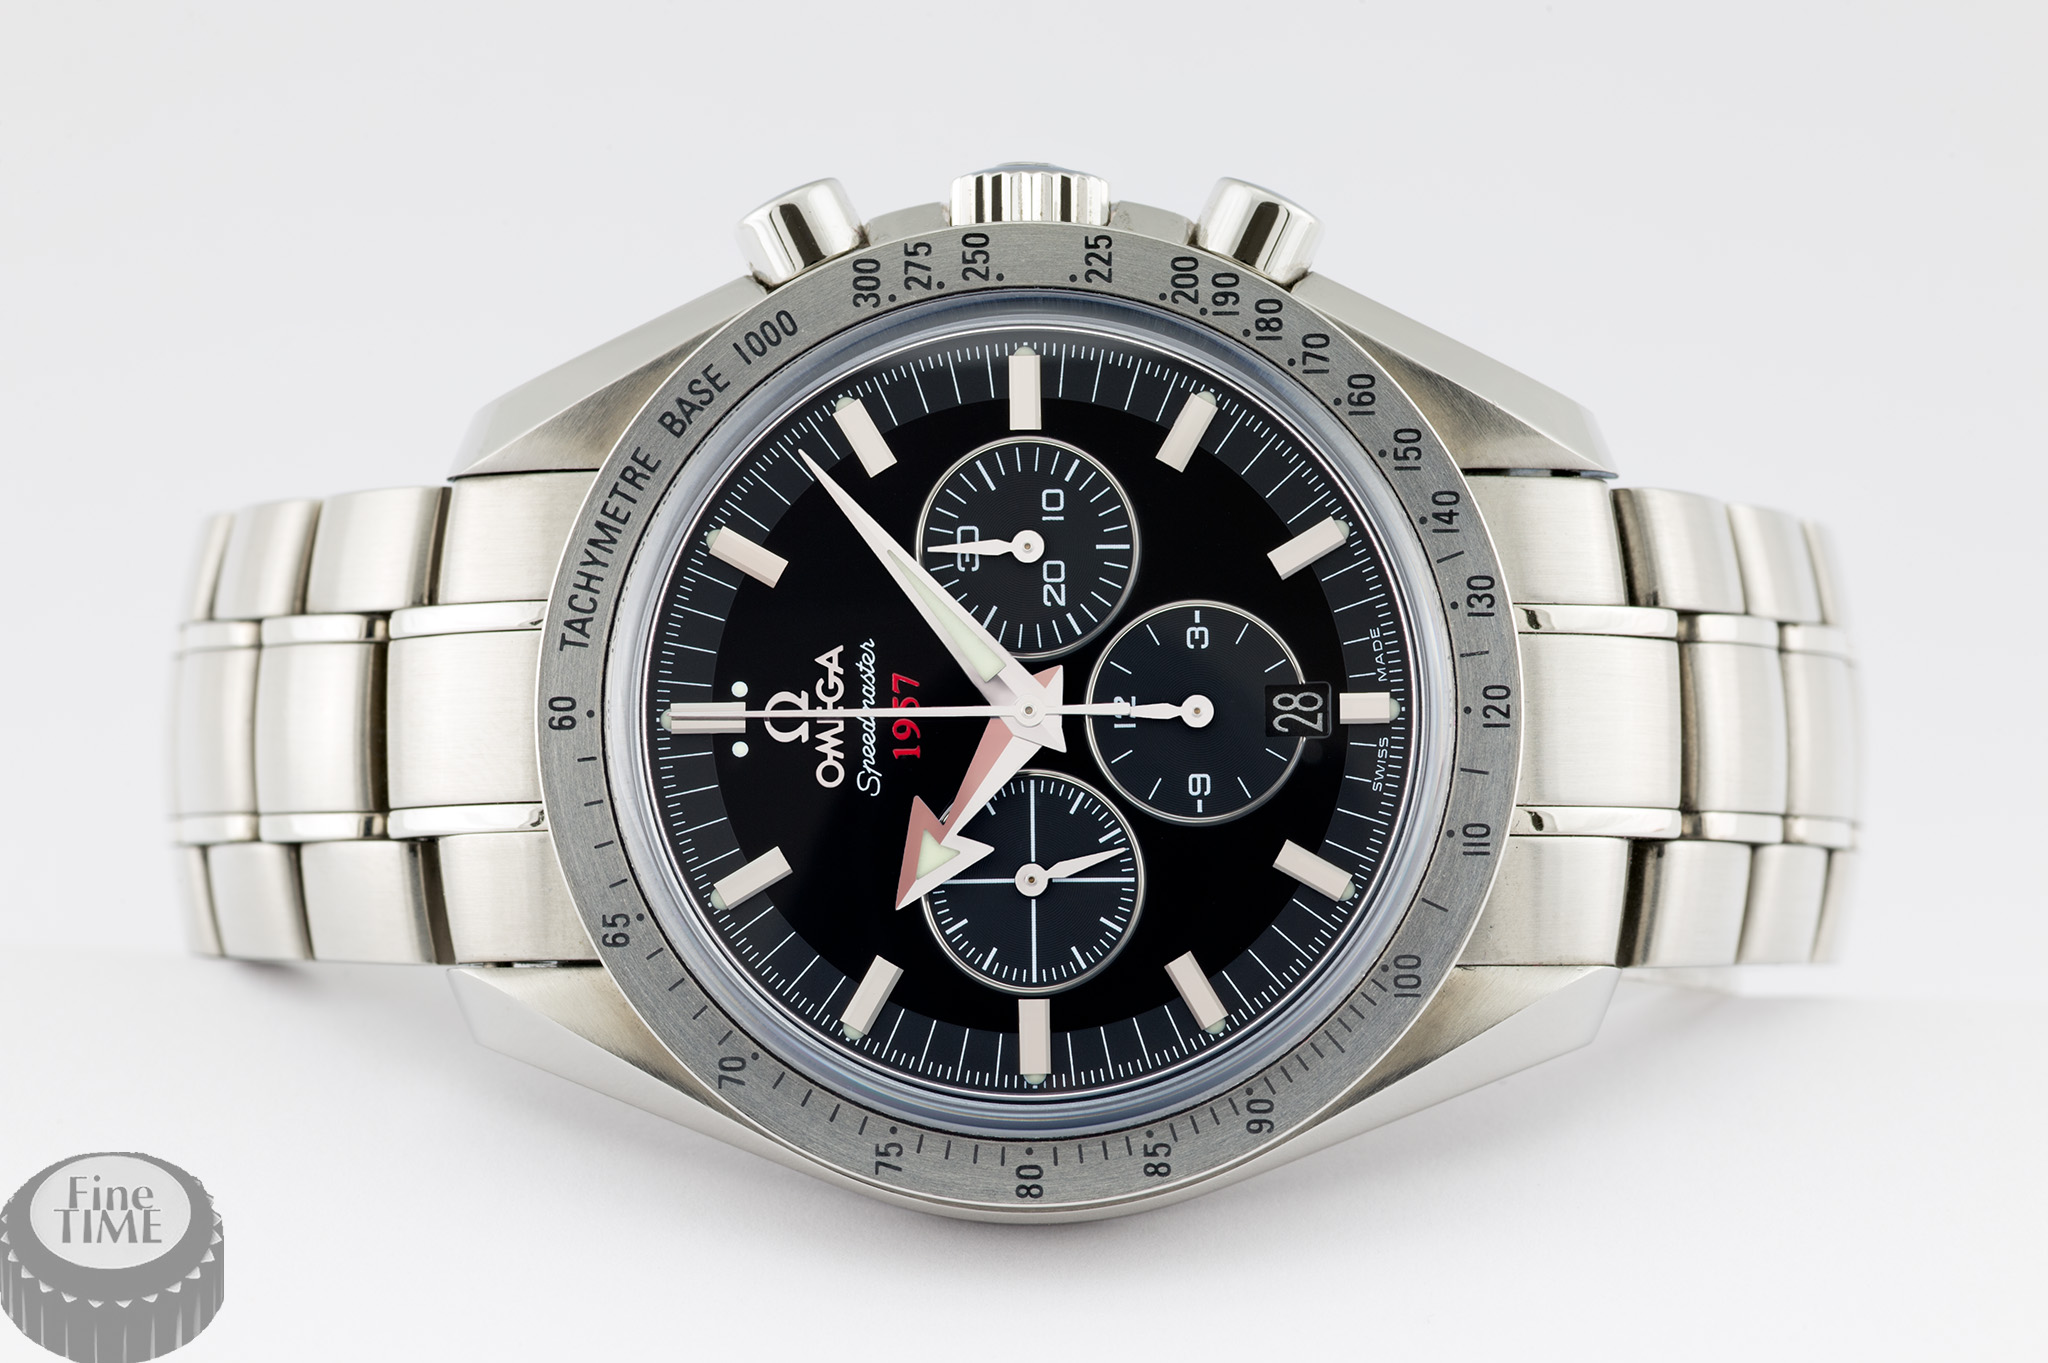 Omega Speedmaster 1957 Broad Arrow 321.10.42.50.01.001